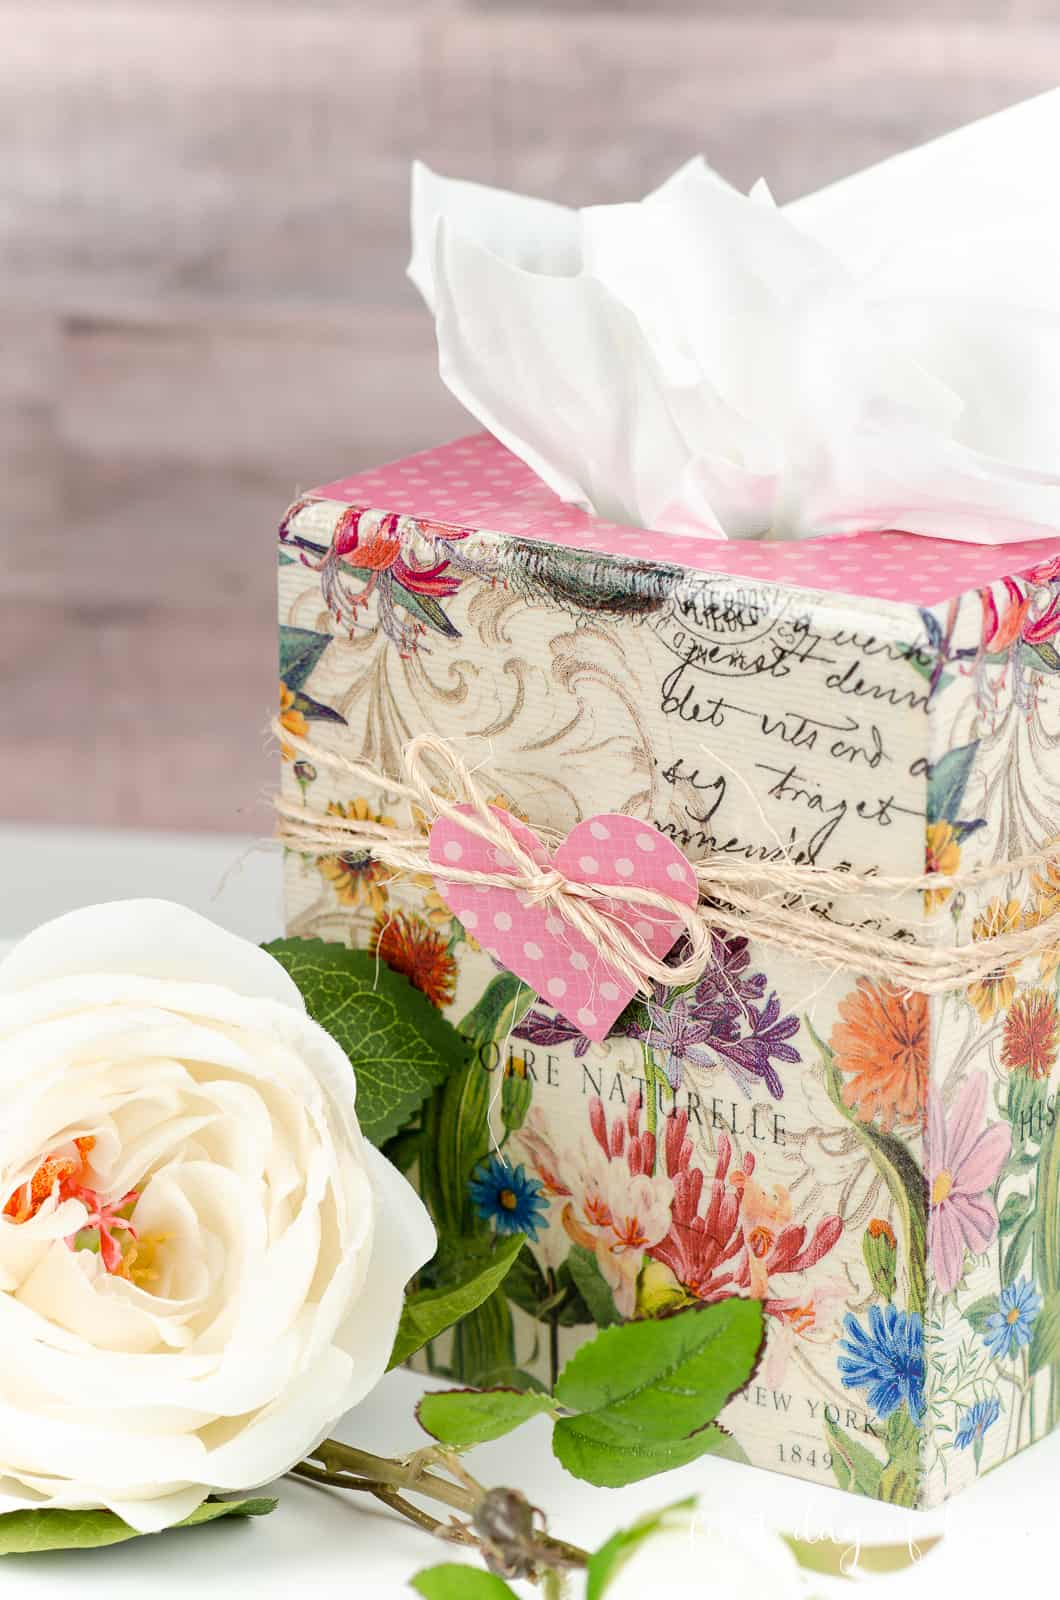 Wooden tissue box with decoupage napkins next to white rose